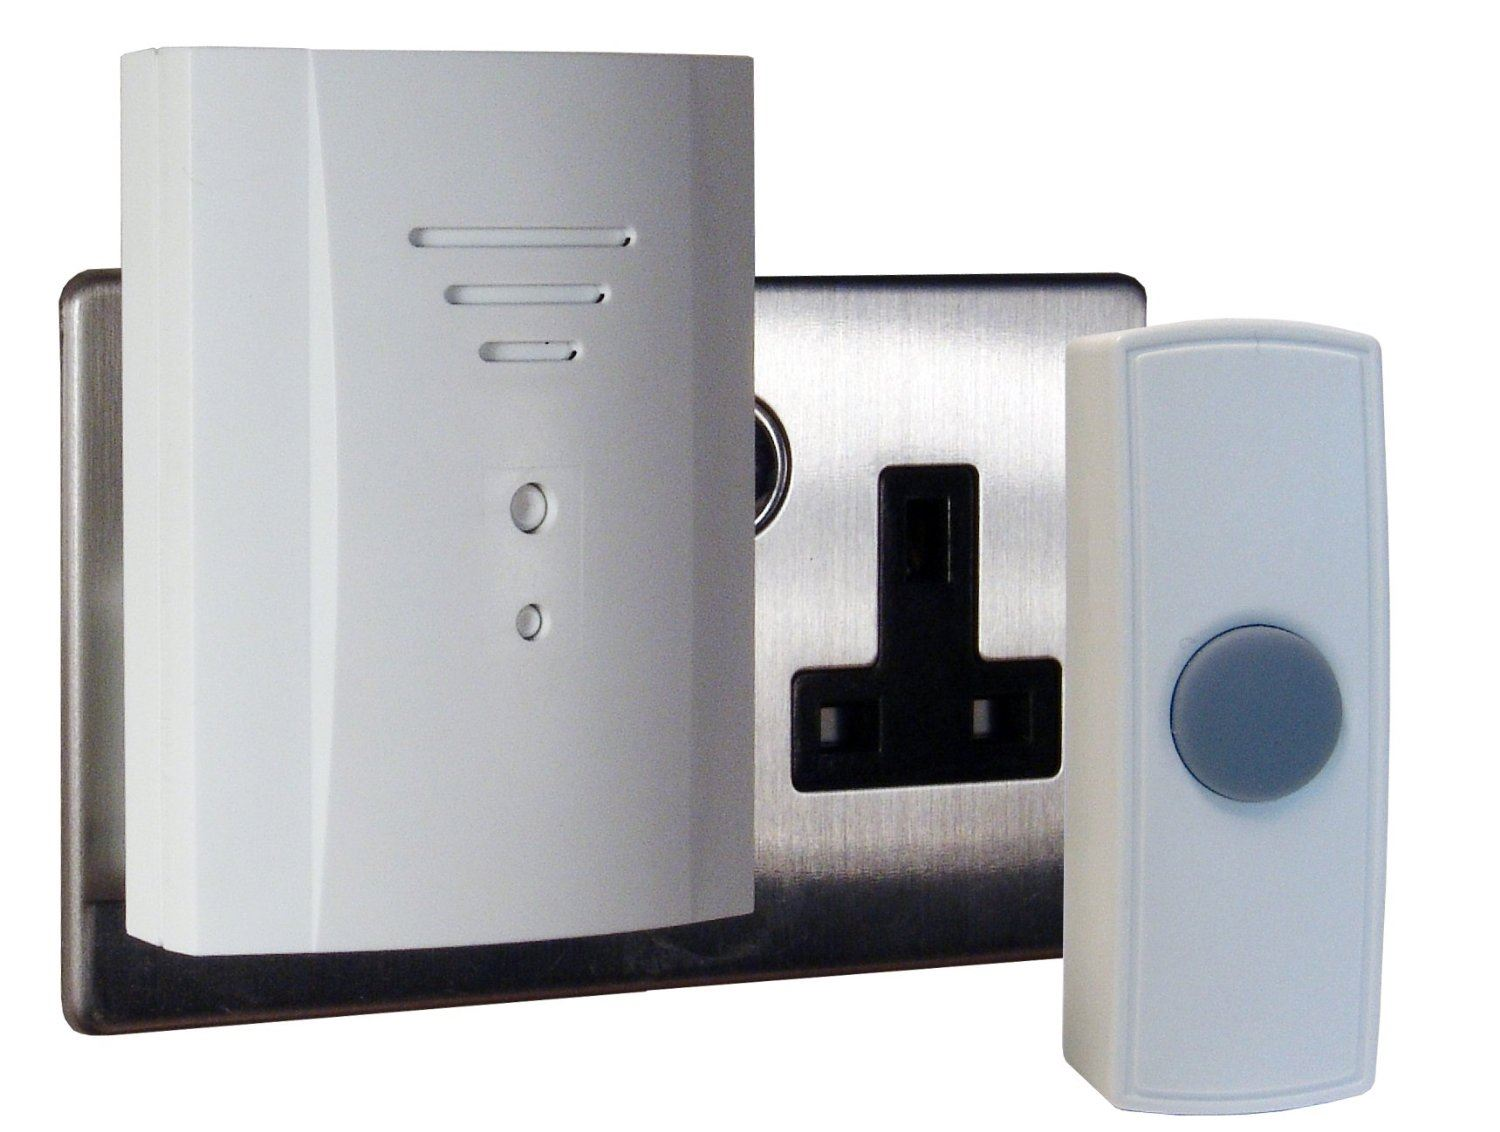 with sounds kit ge chimes kits wireless home chime depot doors nickel p door the